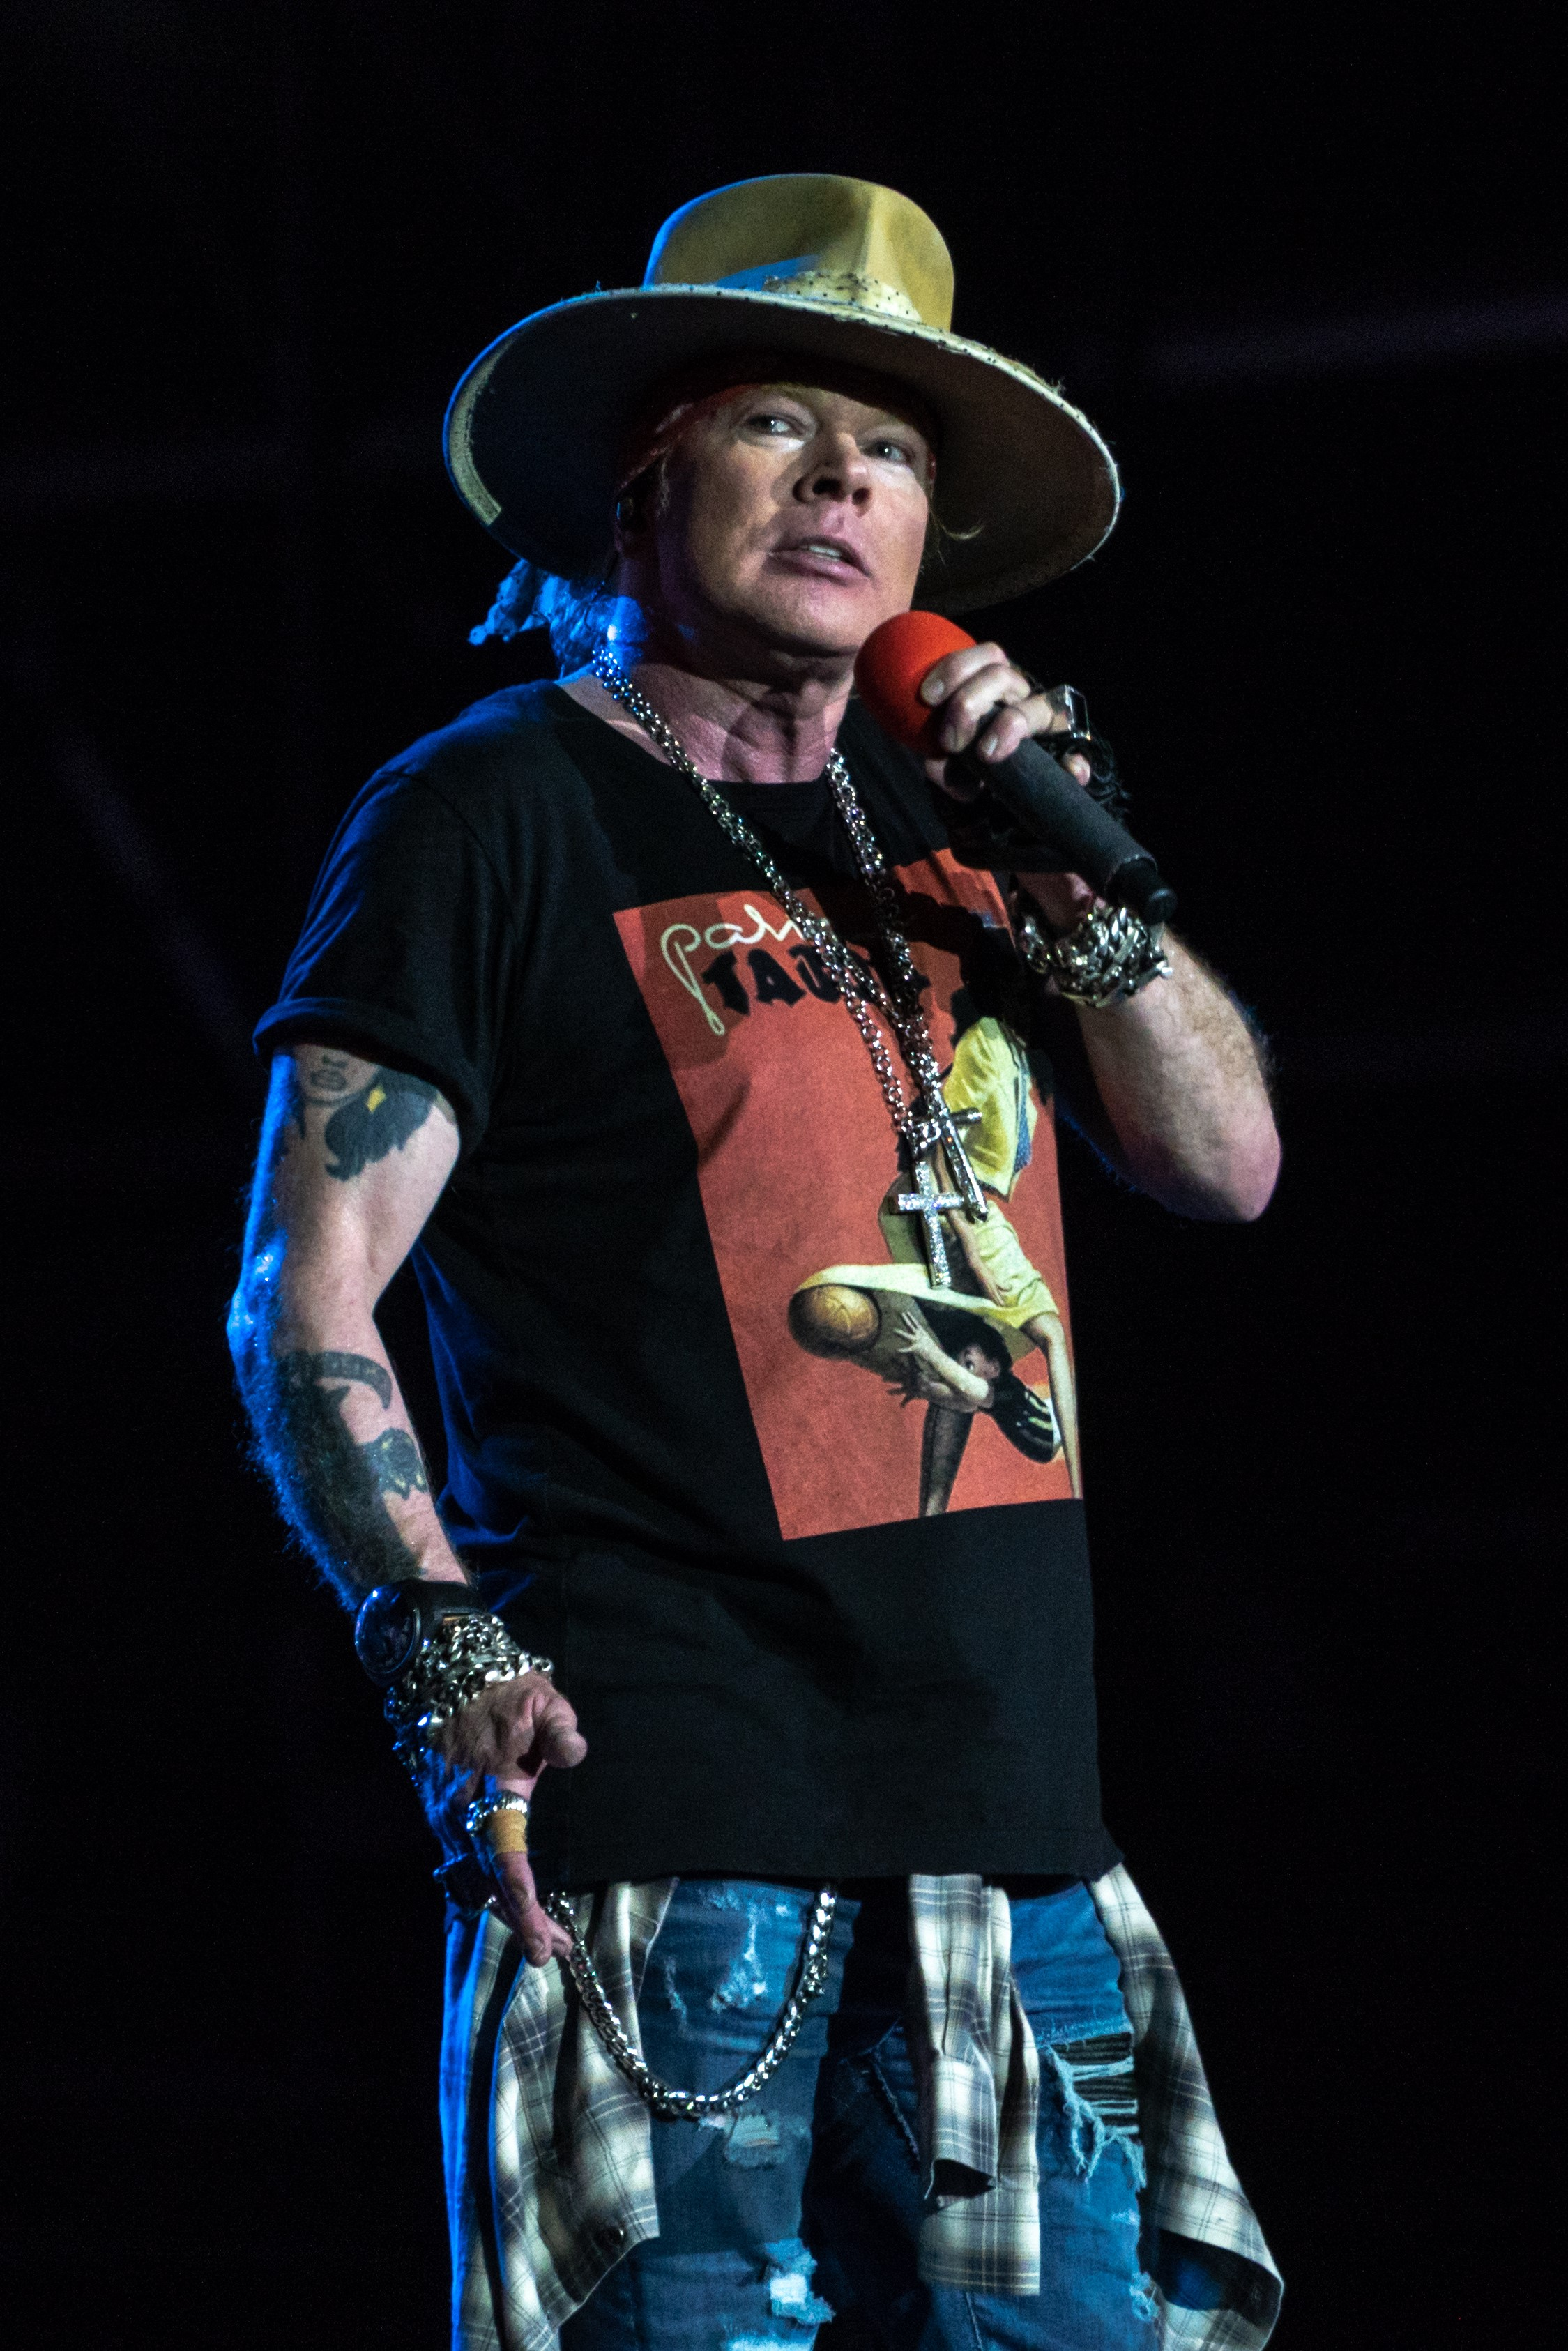 da60abc9b2658 Axl Rose - Wikipedia